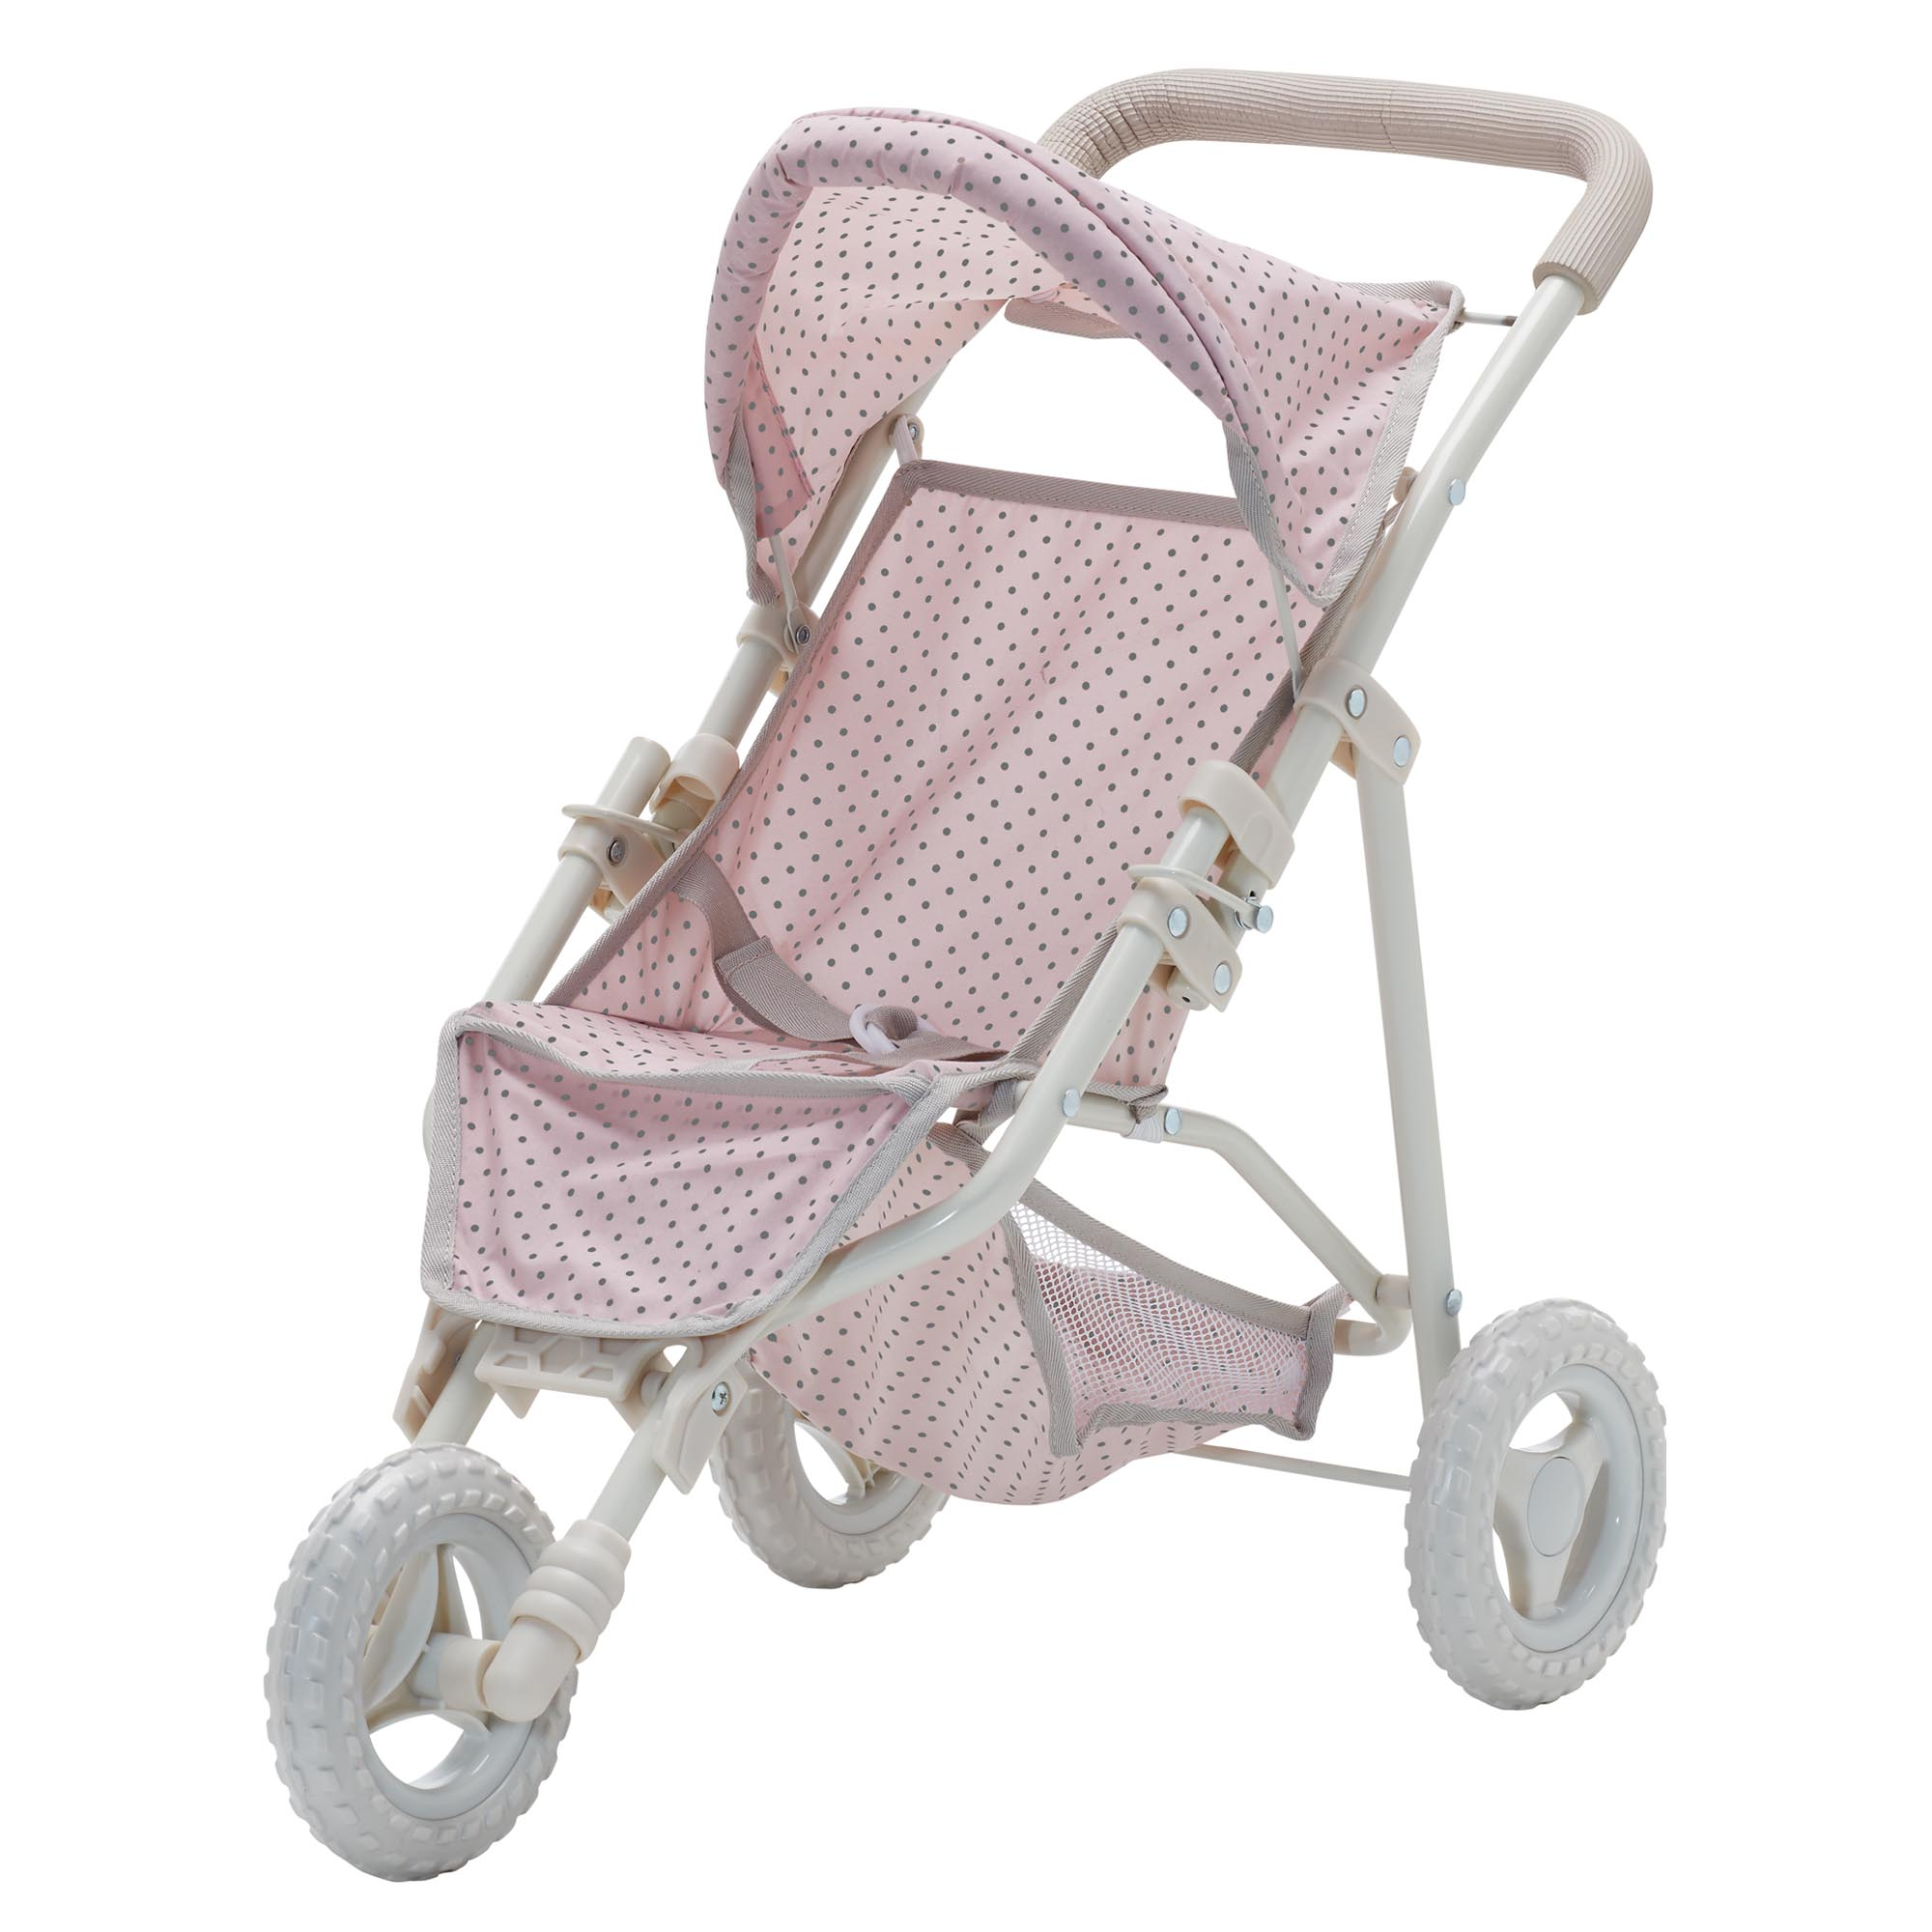 Olivia's little world ~ Polka Dot Princess 45cm Doll Furniture ~ Baby doll jogging stroller 3+